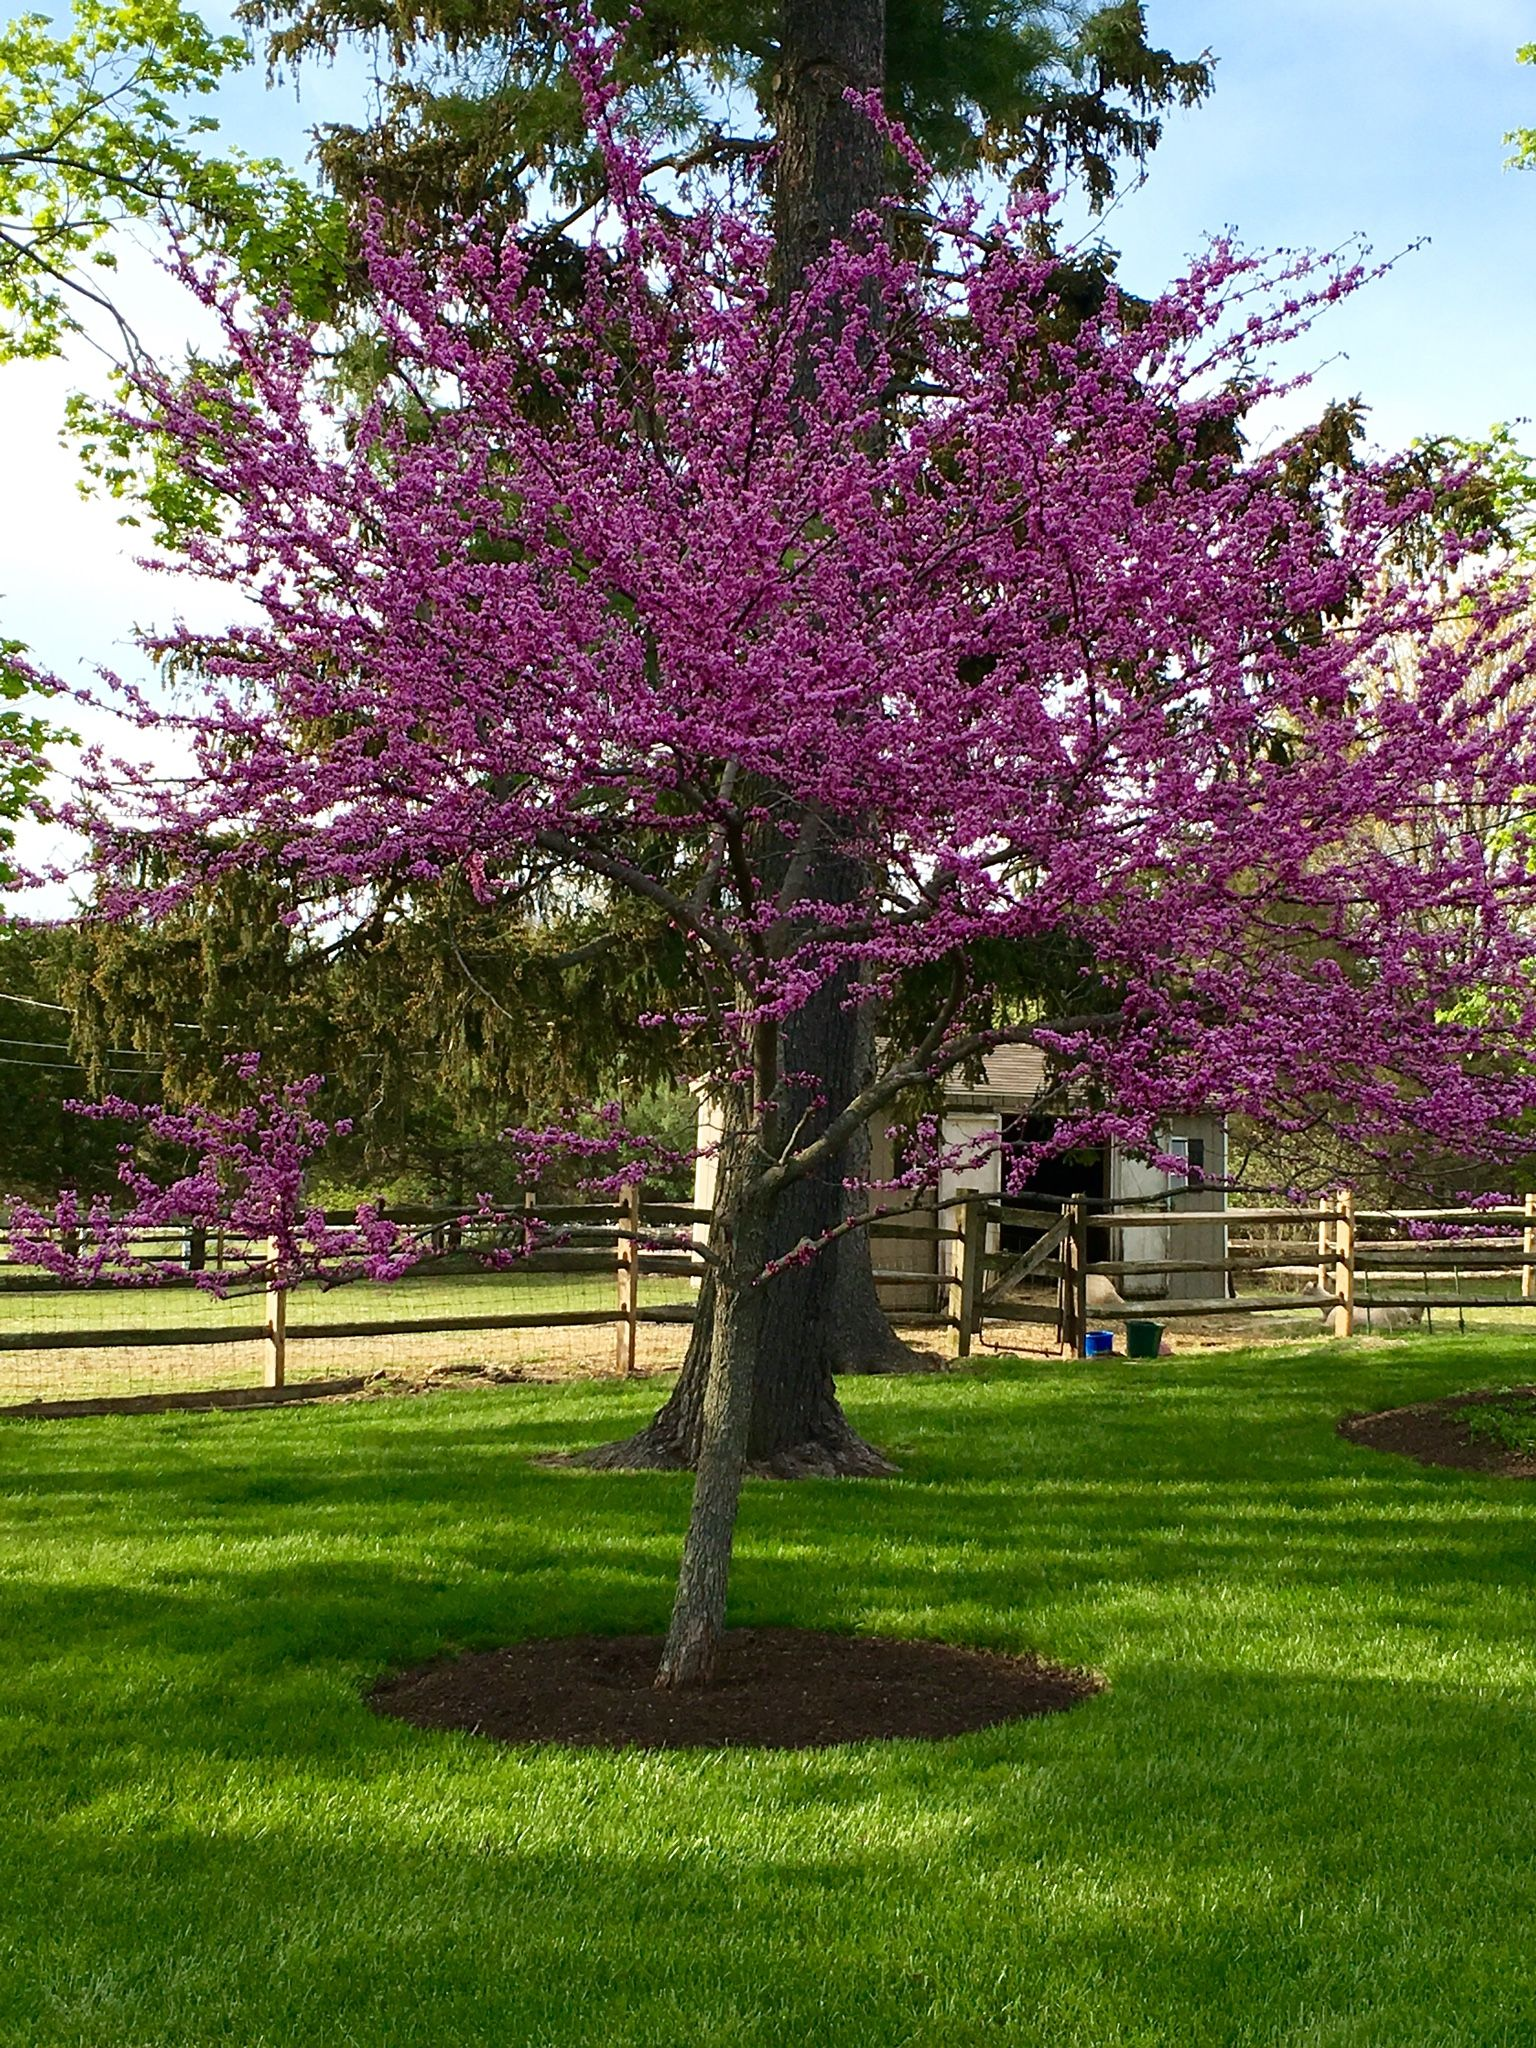 Eastern Red Bud Tree Adding Early Spring Color To The Landscape